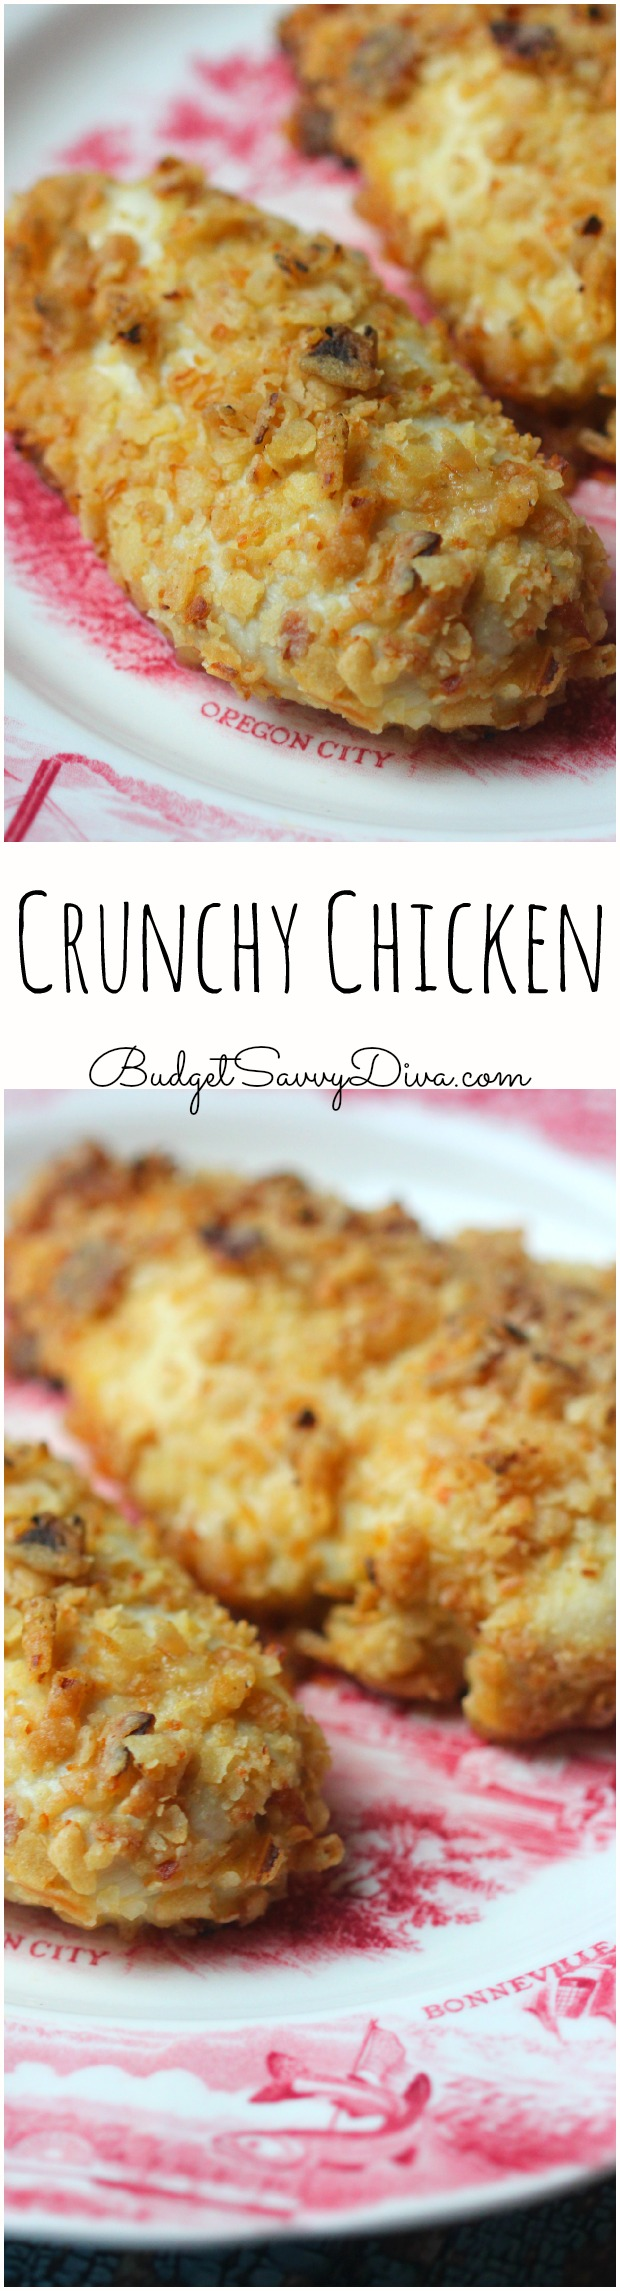 Crunchy Chicken Recipe